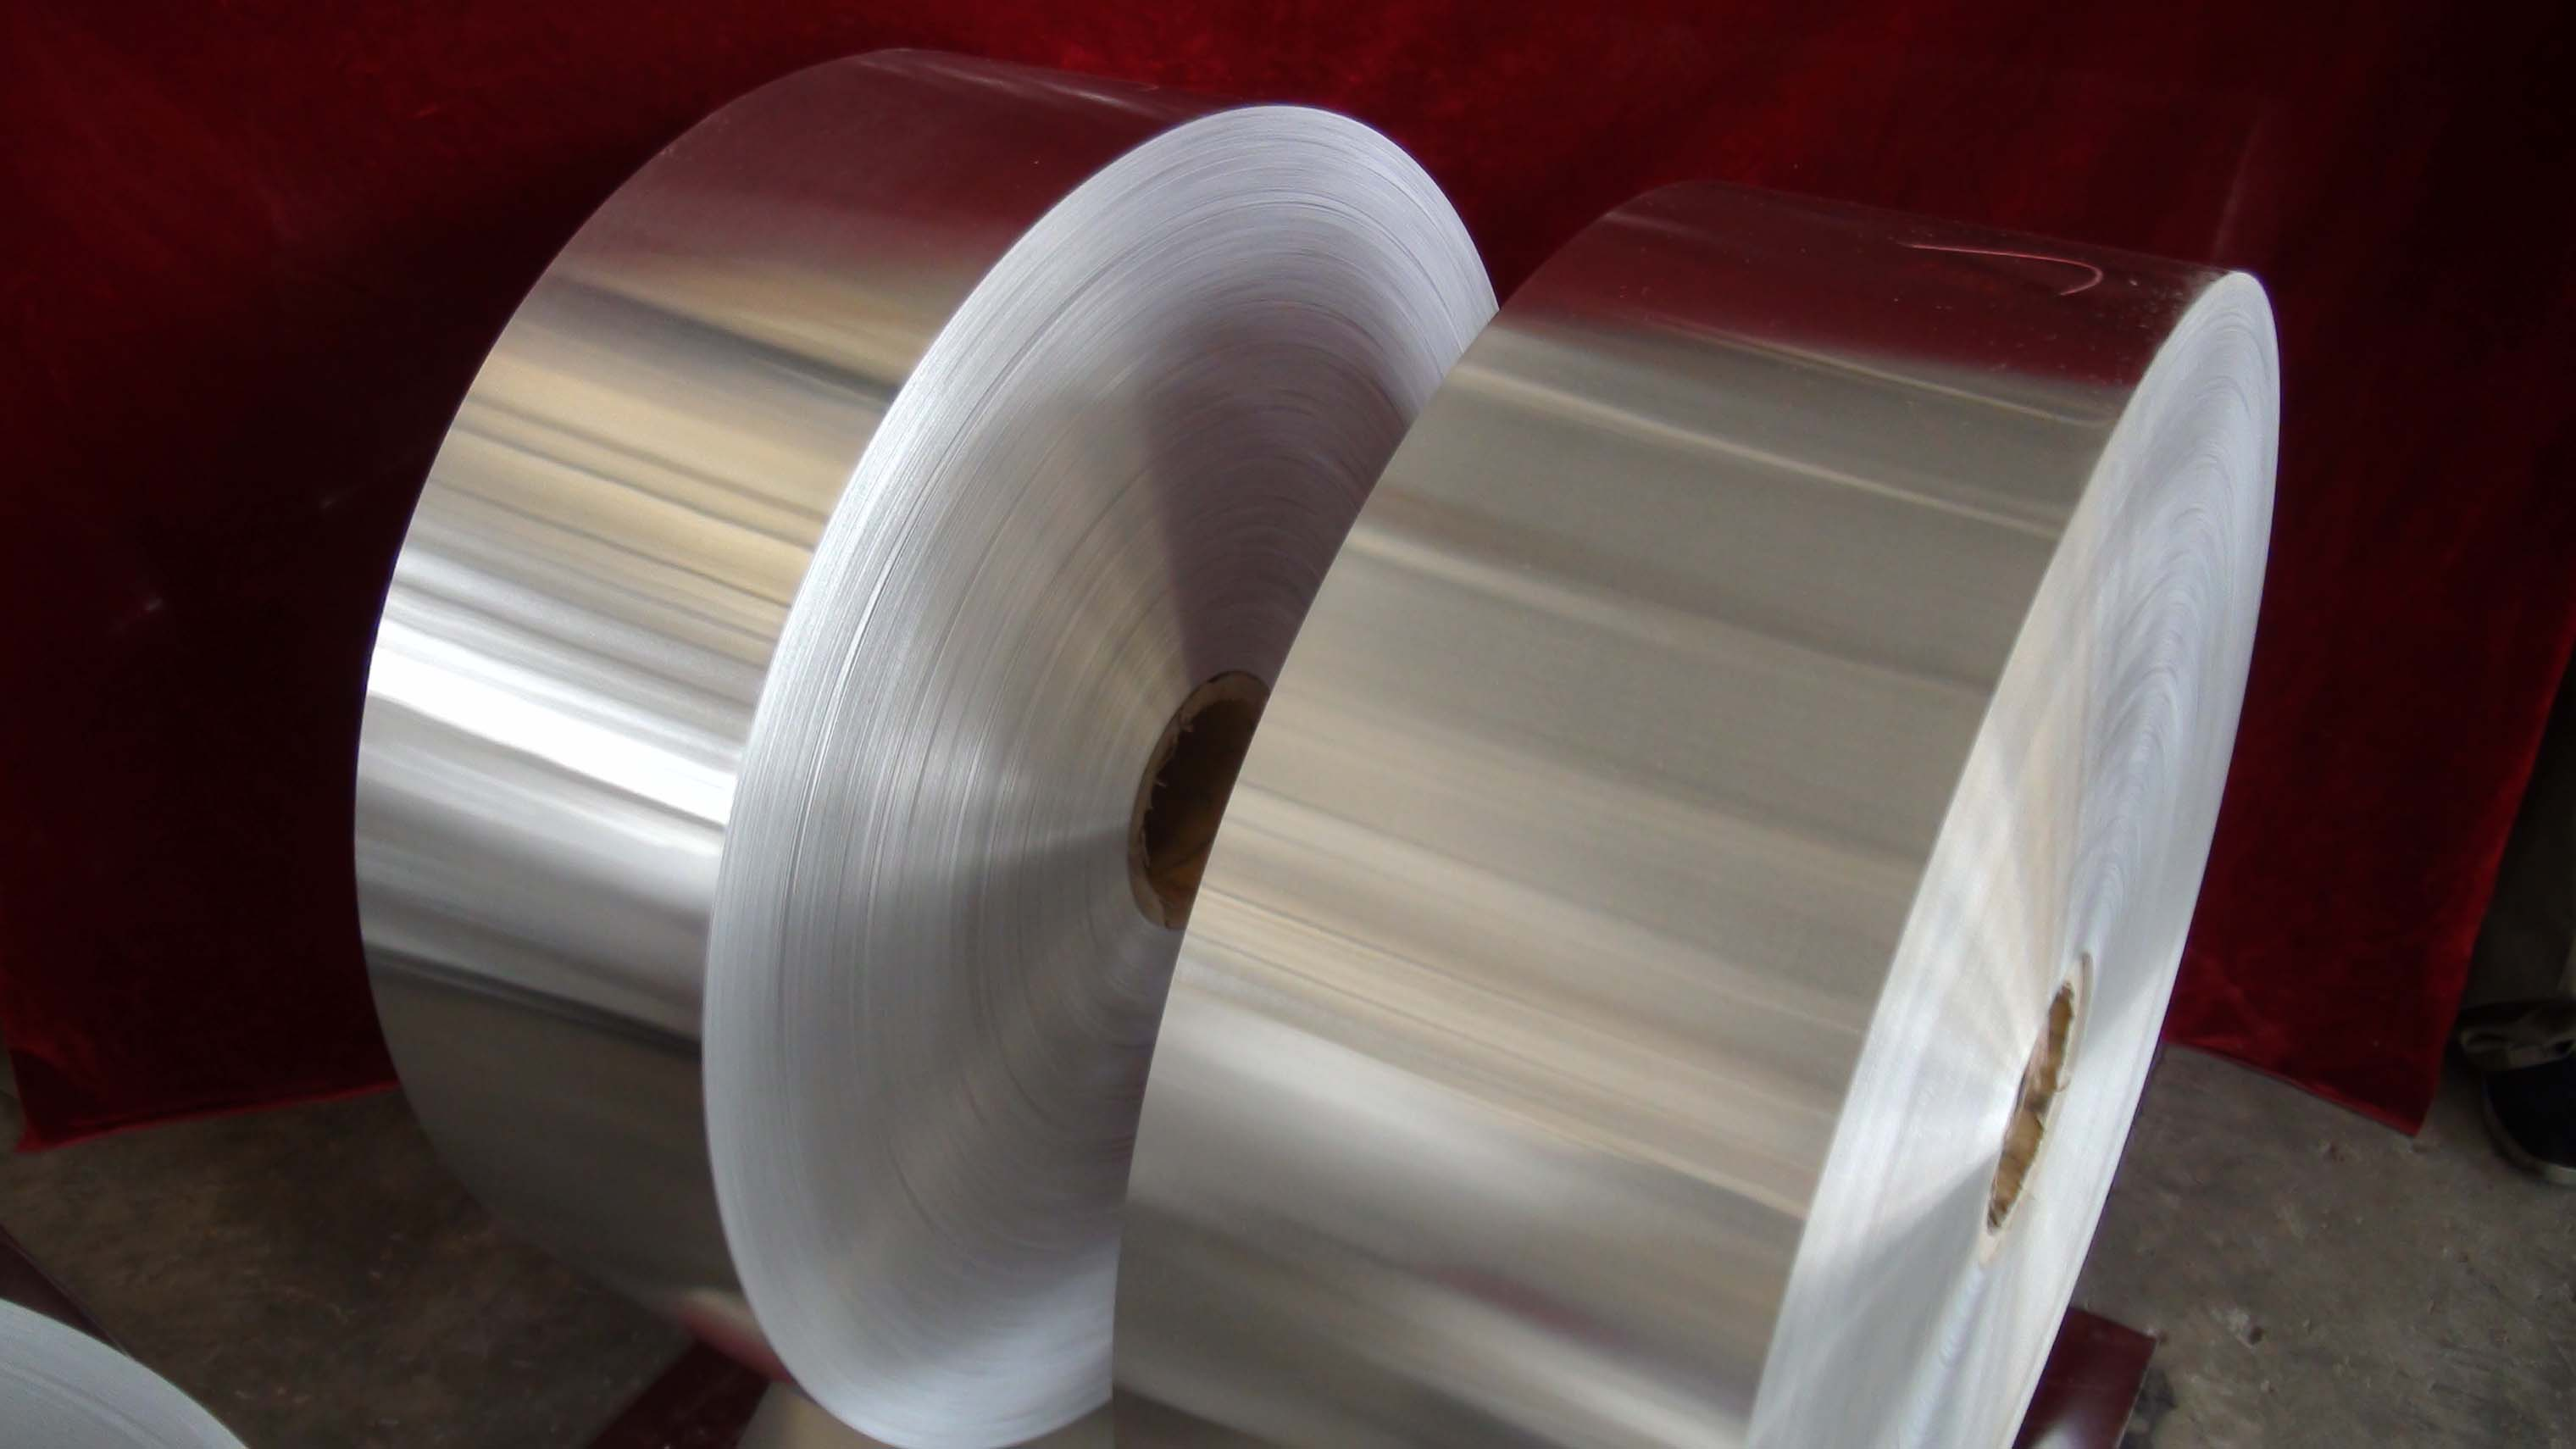 2018 aluminium foil industry in americas Essay on 2018 aluminium foil industry in americas- market opportunities & future outlook and future outlook for aluminium foil in different american countries.